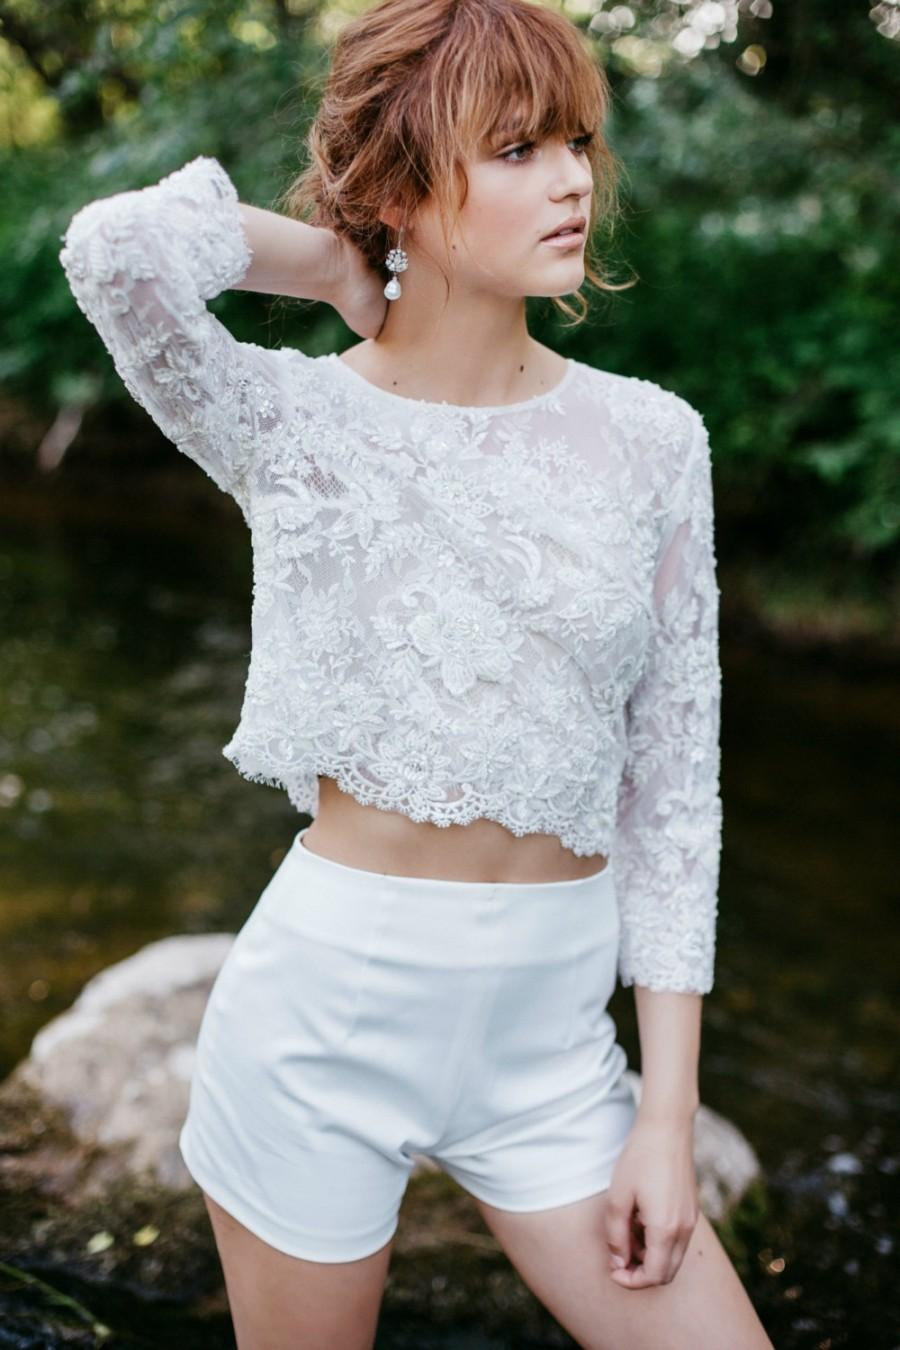 Wedding - Wedding Top, Bridal Lace Top, Boho Bridal  Lace Crop Top , 3/4 Sleeves Bridal Top, Ivory  White Floral Lace Top, Bridal Separates - ARIEL